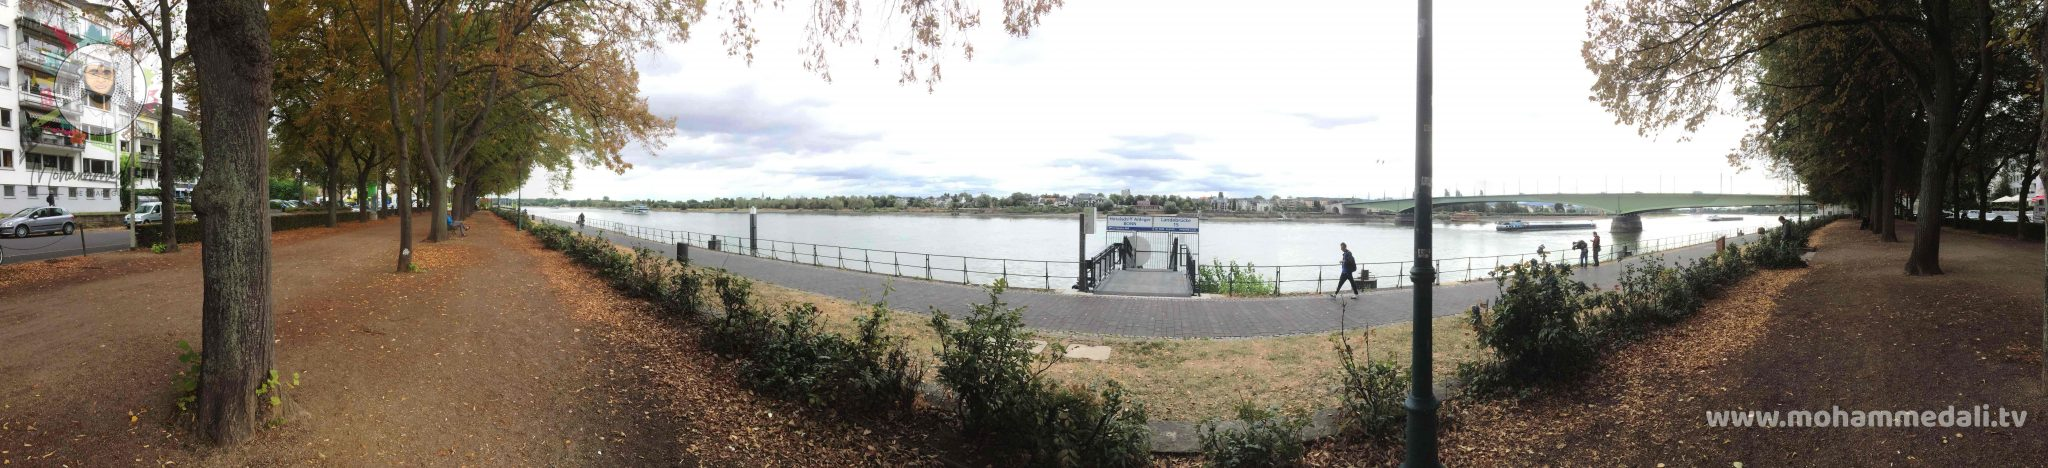 Breathtaking panoramic view on river rhine near Kennedy Bridge in Bonn